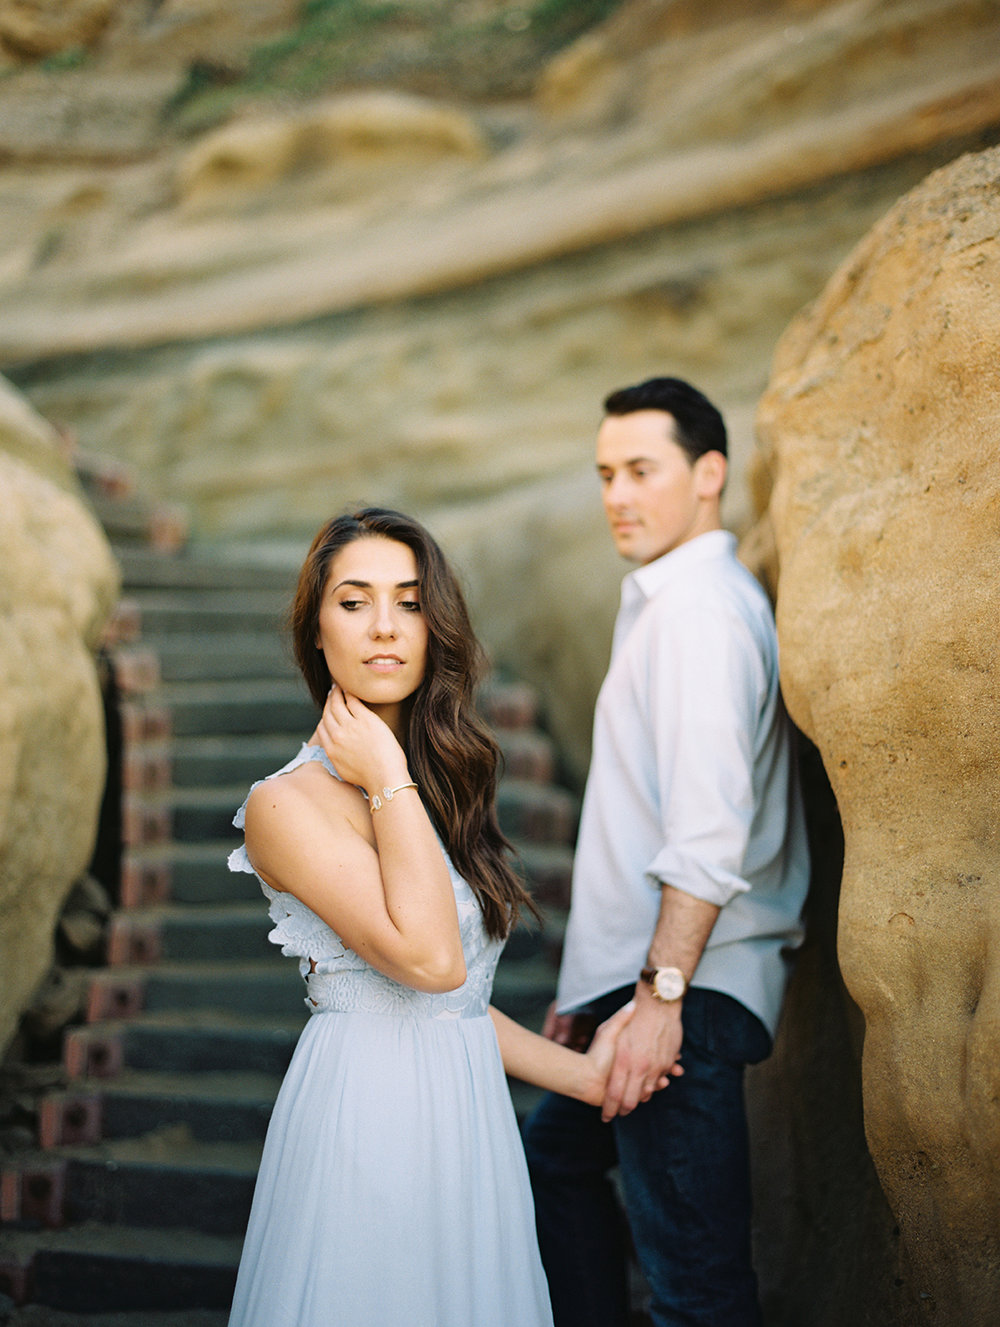 104-brumley-wells-photography-brett-sarah-engagement-torrey-pines.jpg